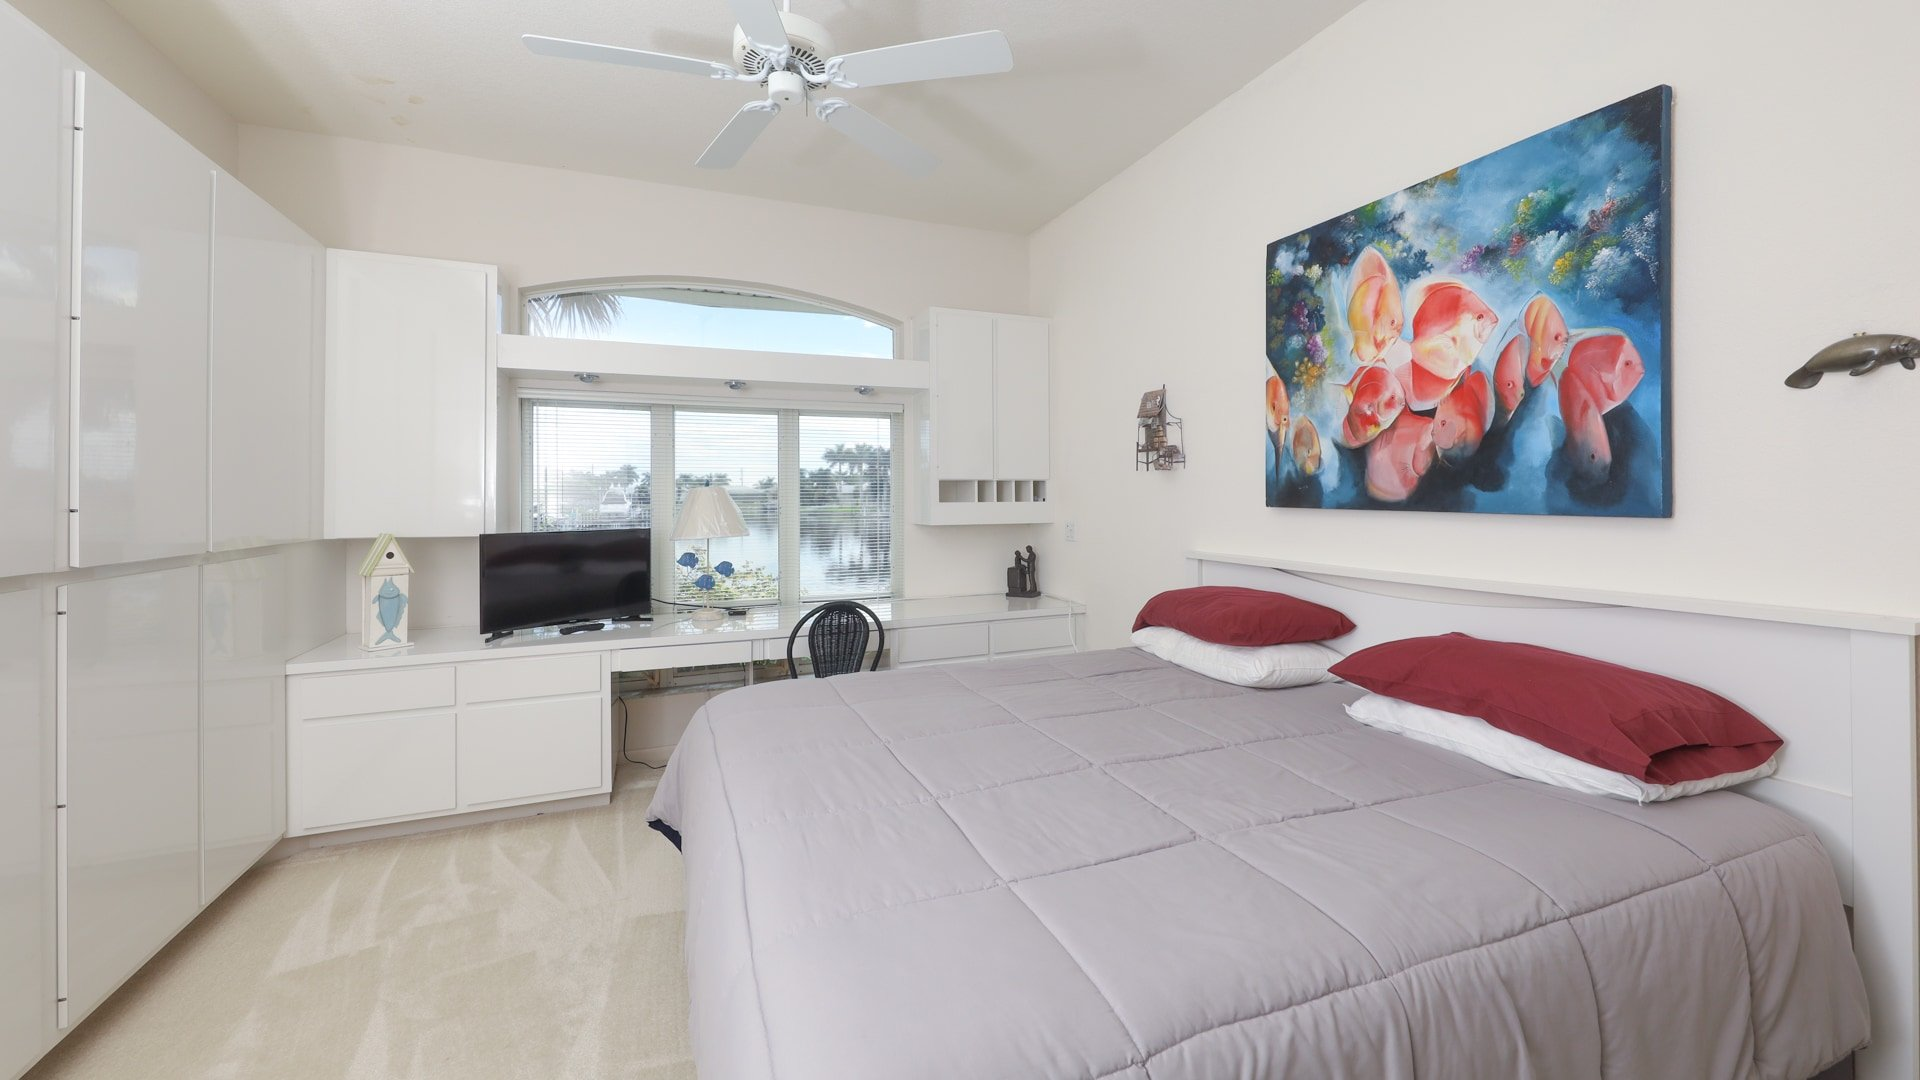 3836 Paola Dr-212778